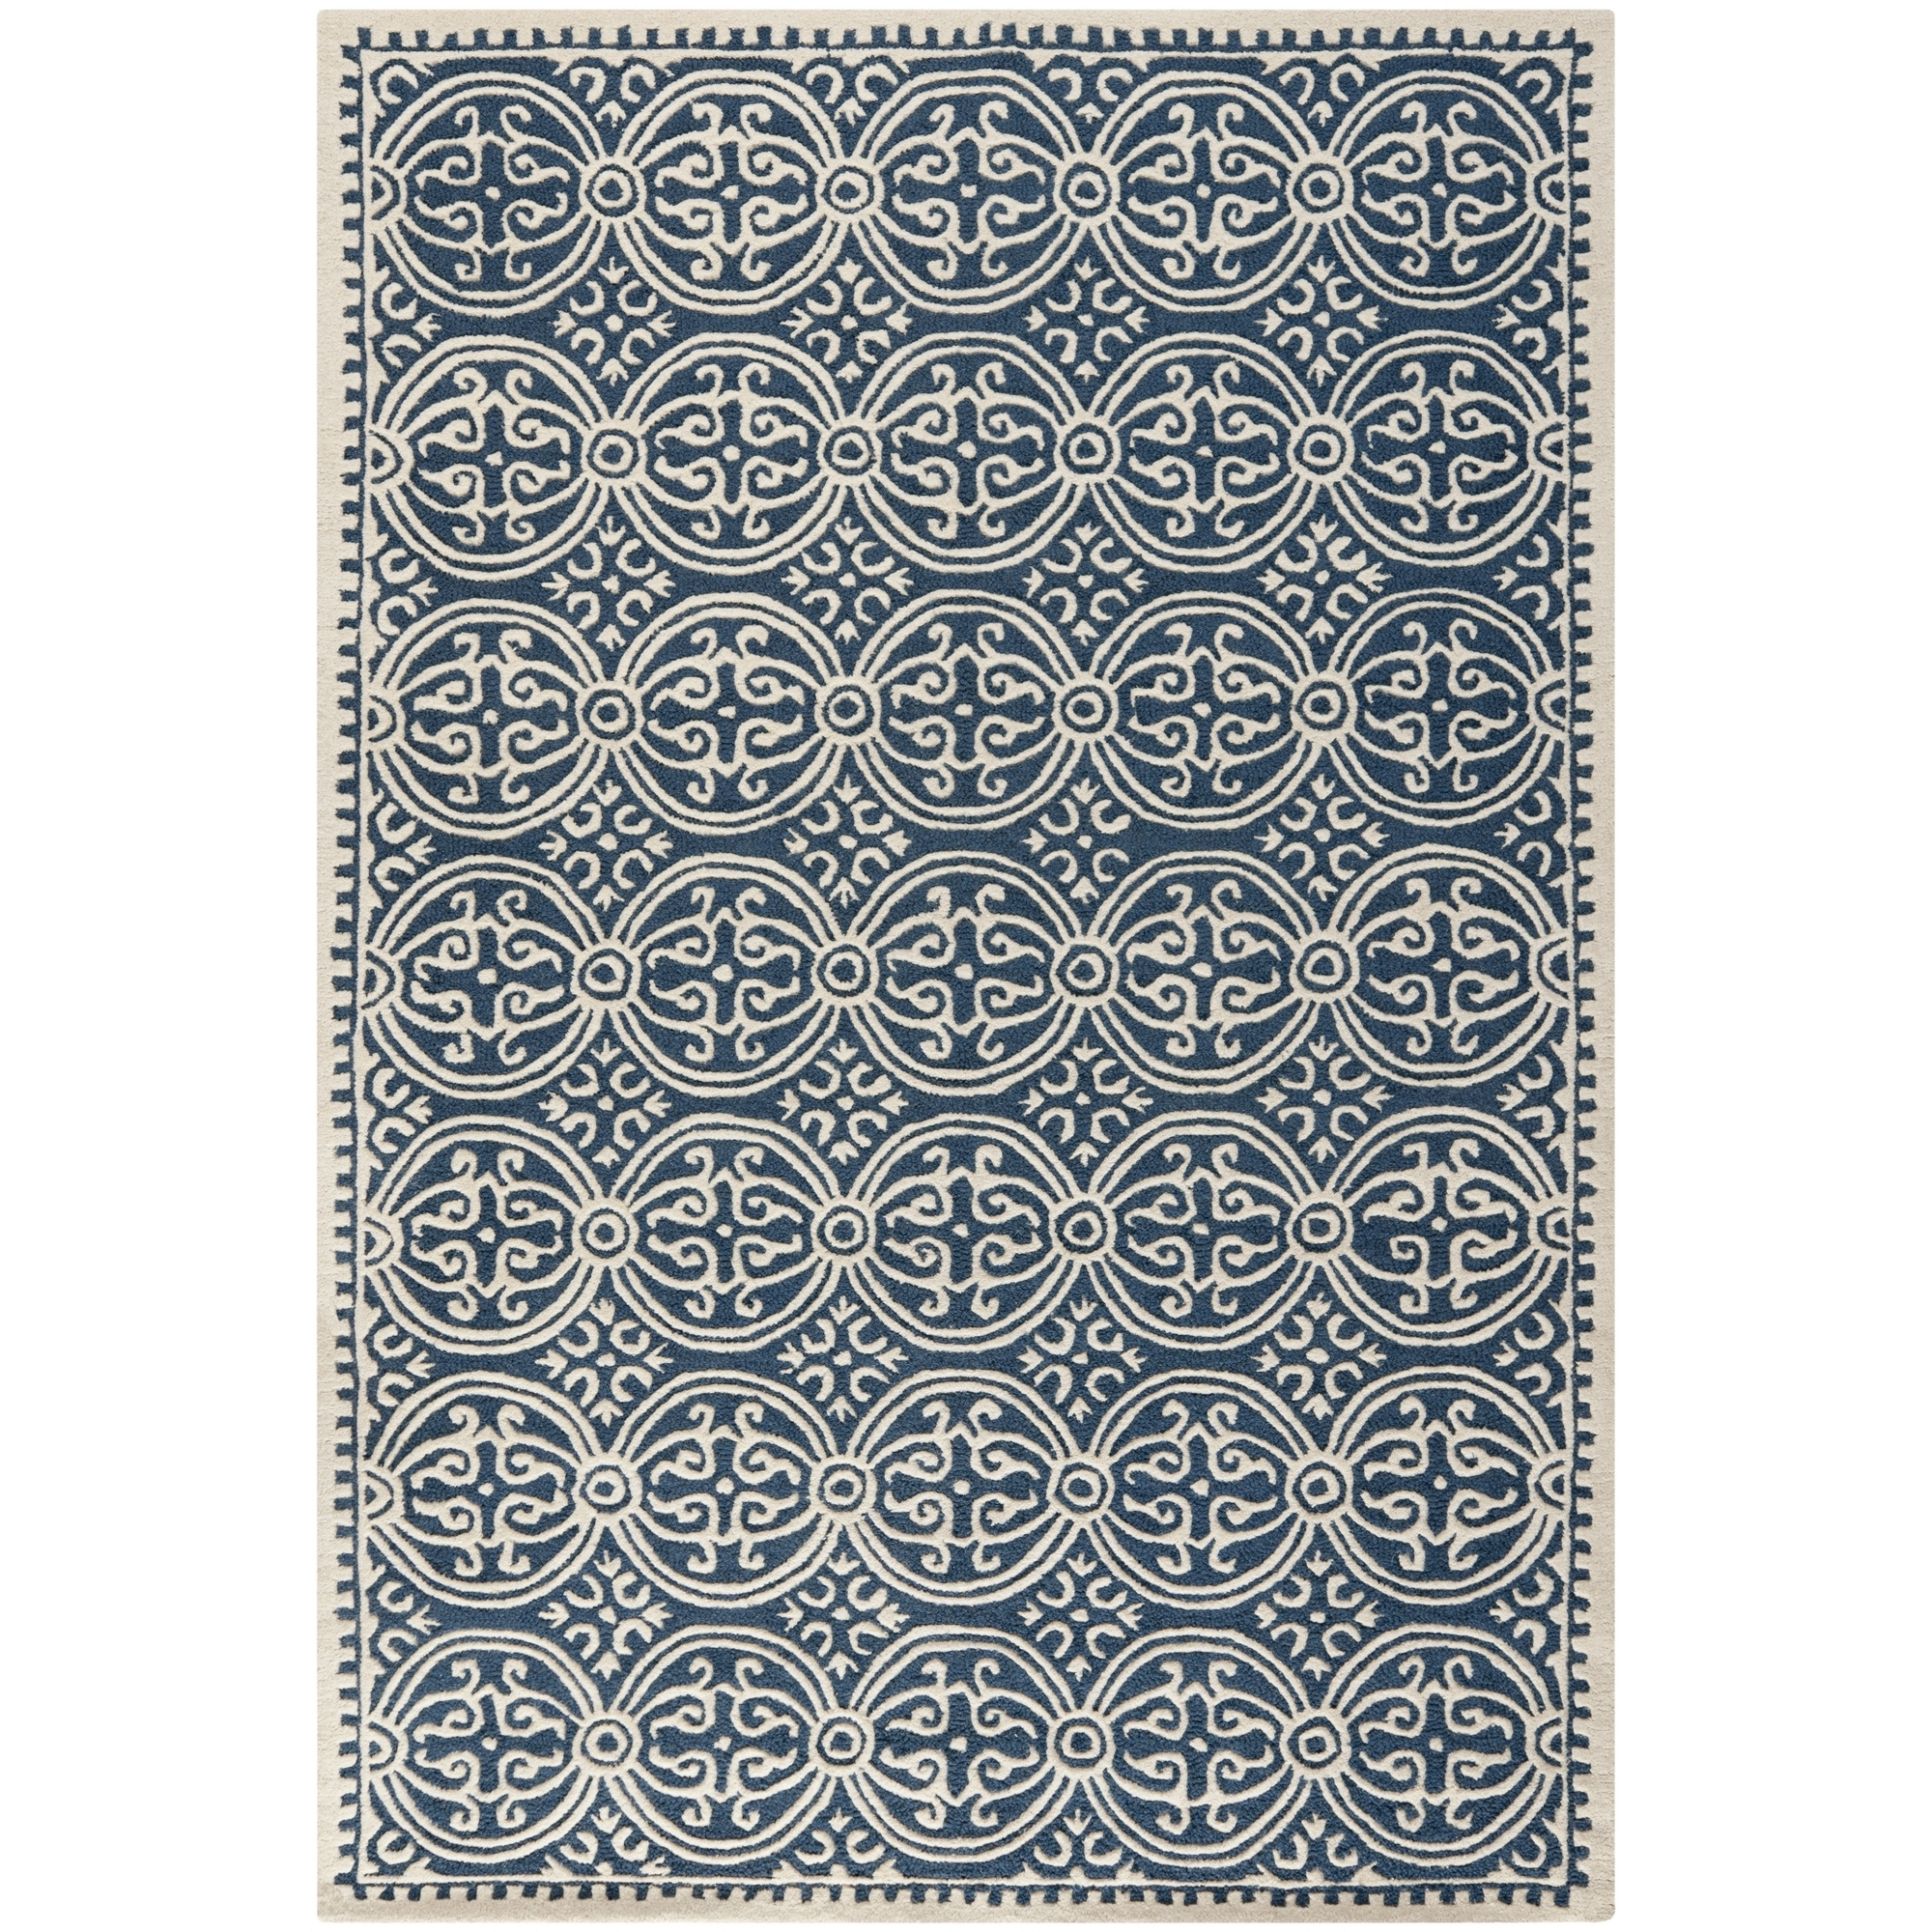 Safavieh Cambridge Navy Blue Ivory Wool Contemporary Area Rug Pertaining To Wool Contemporary Area Rugs (#15 of 15)